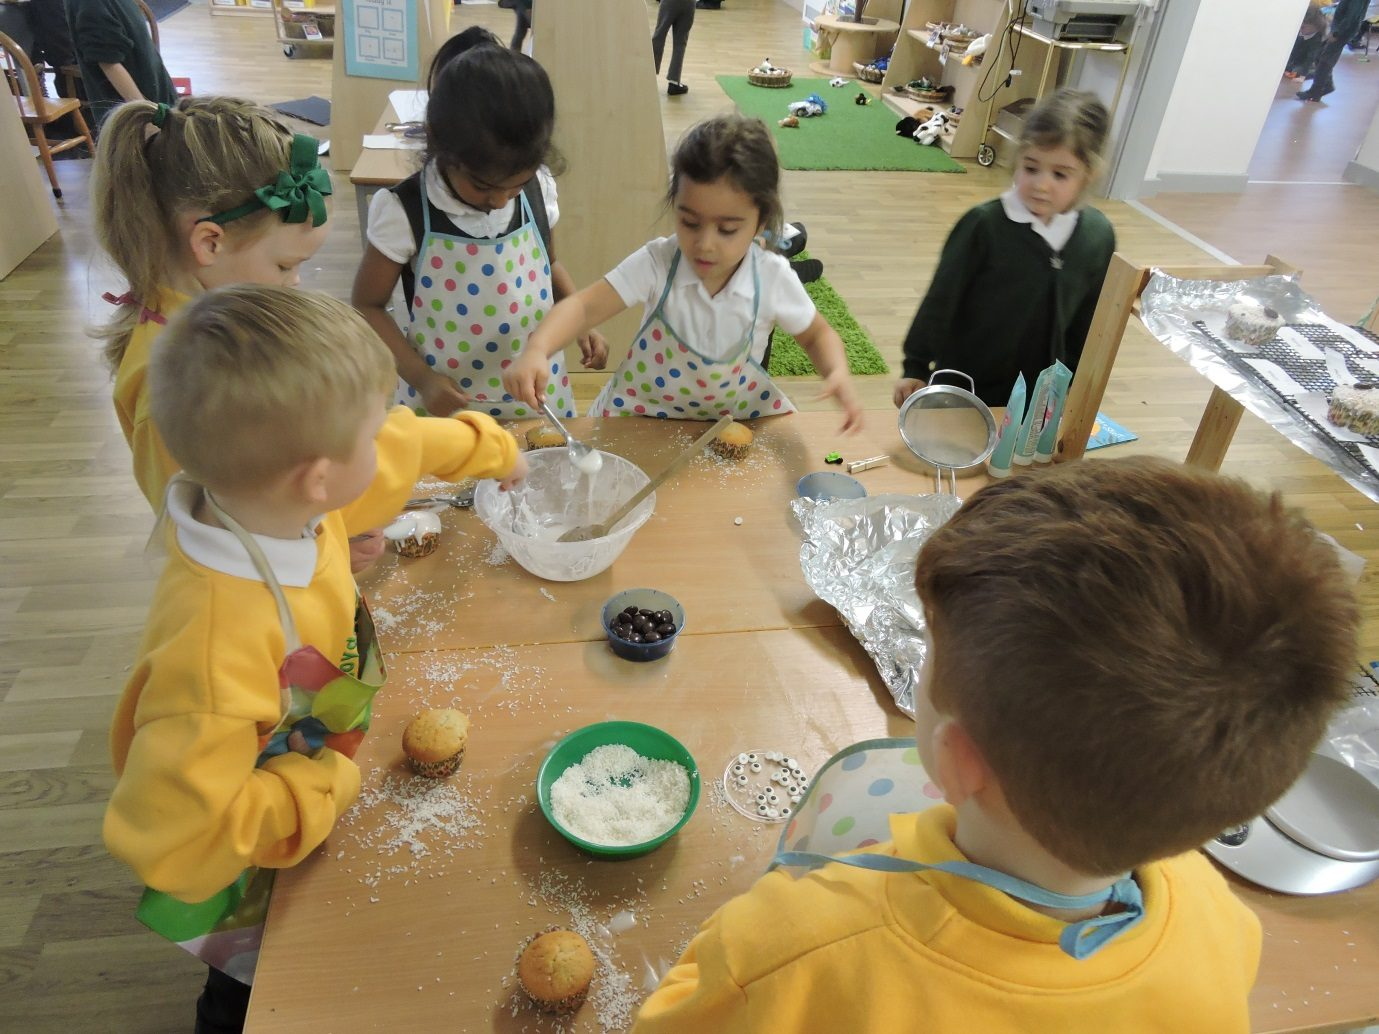 Reception Great Christmas Bake Off!